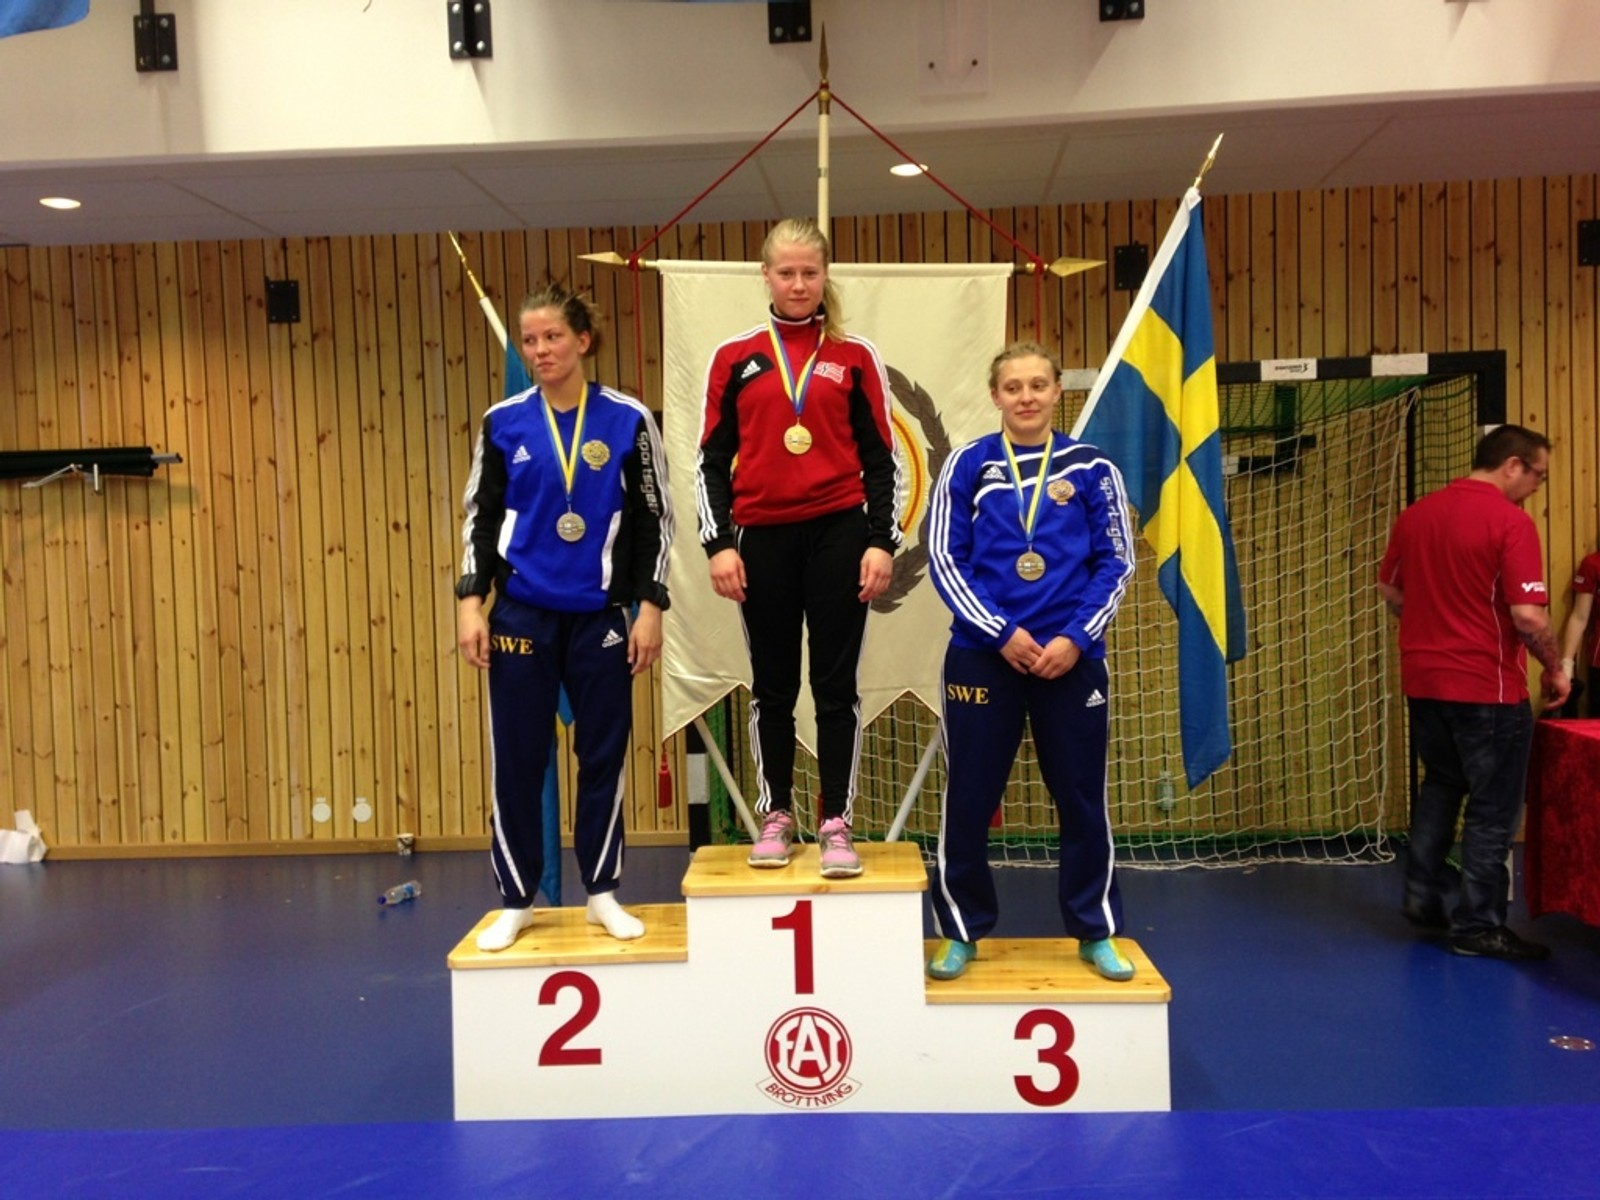 Therese Persson (SWE), Signe Marie Fidje Store (NOR) og Evalina Gryvik (SWE)